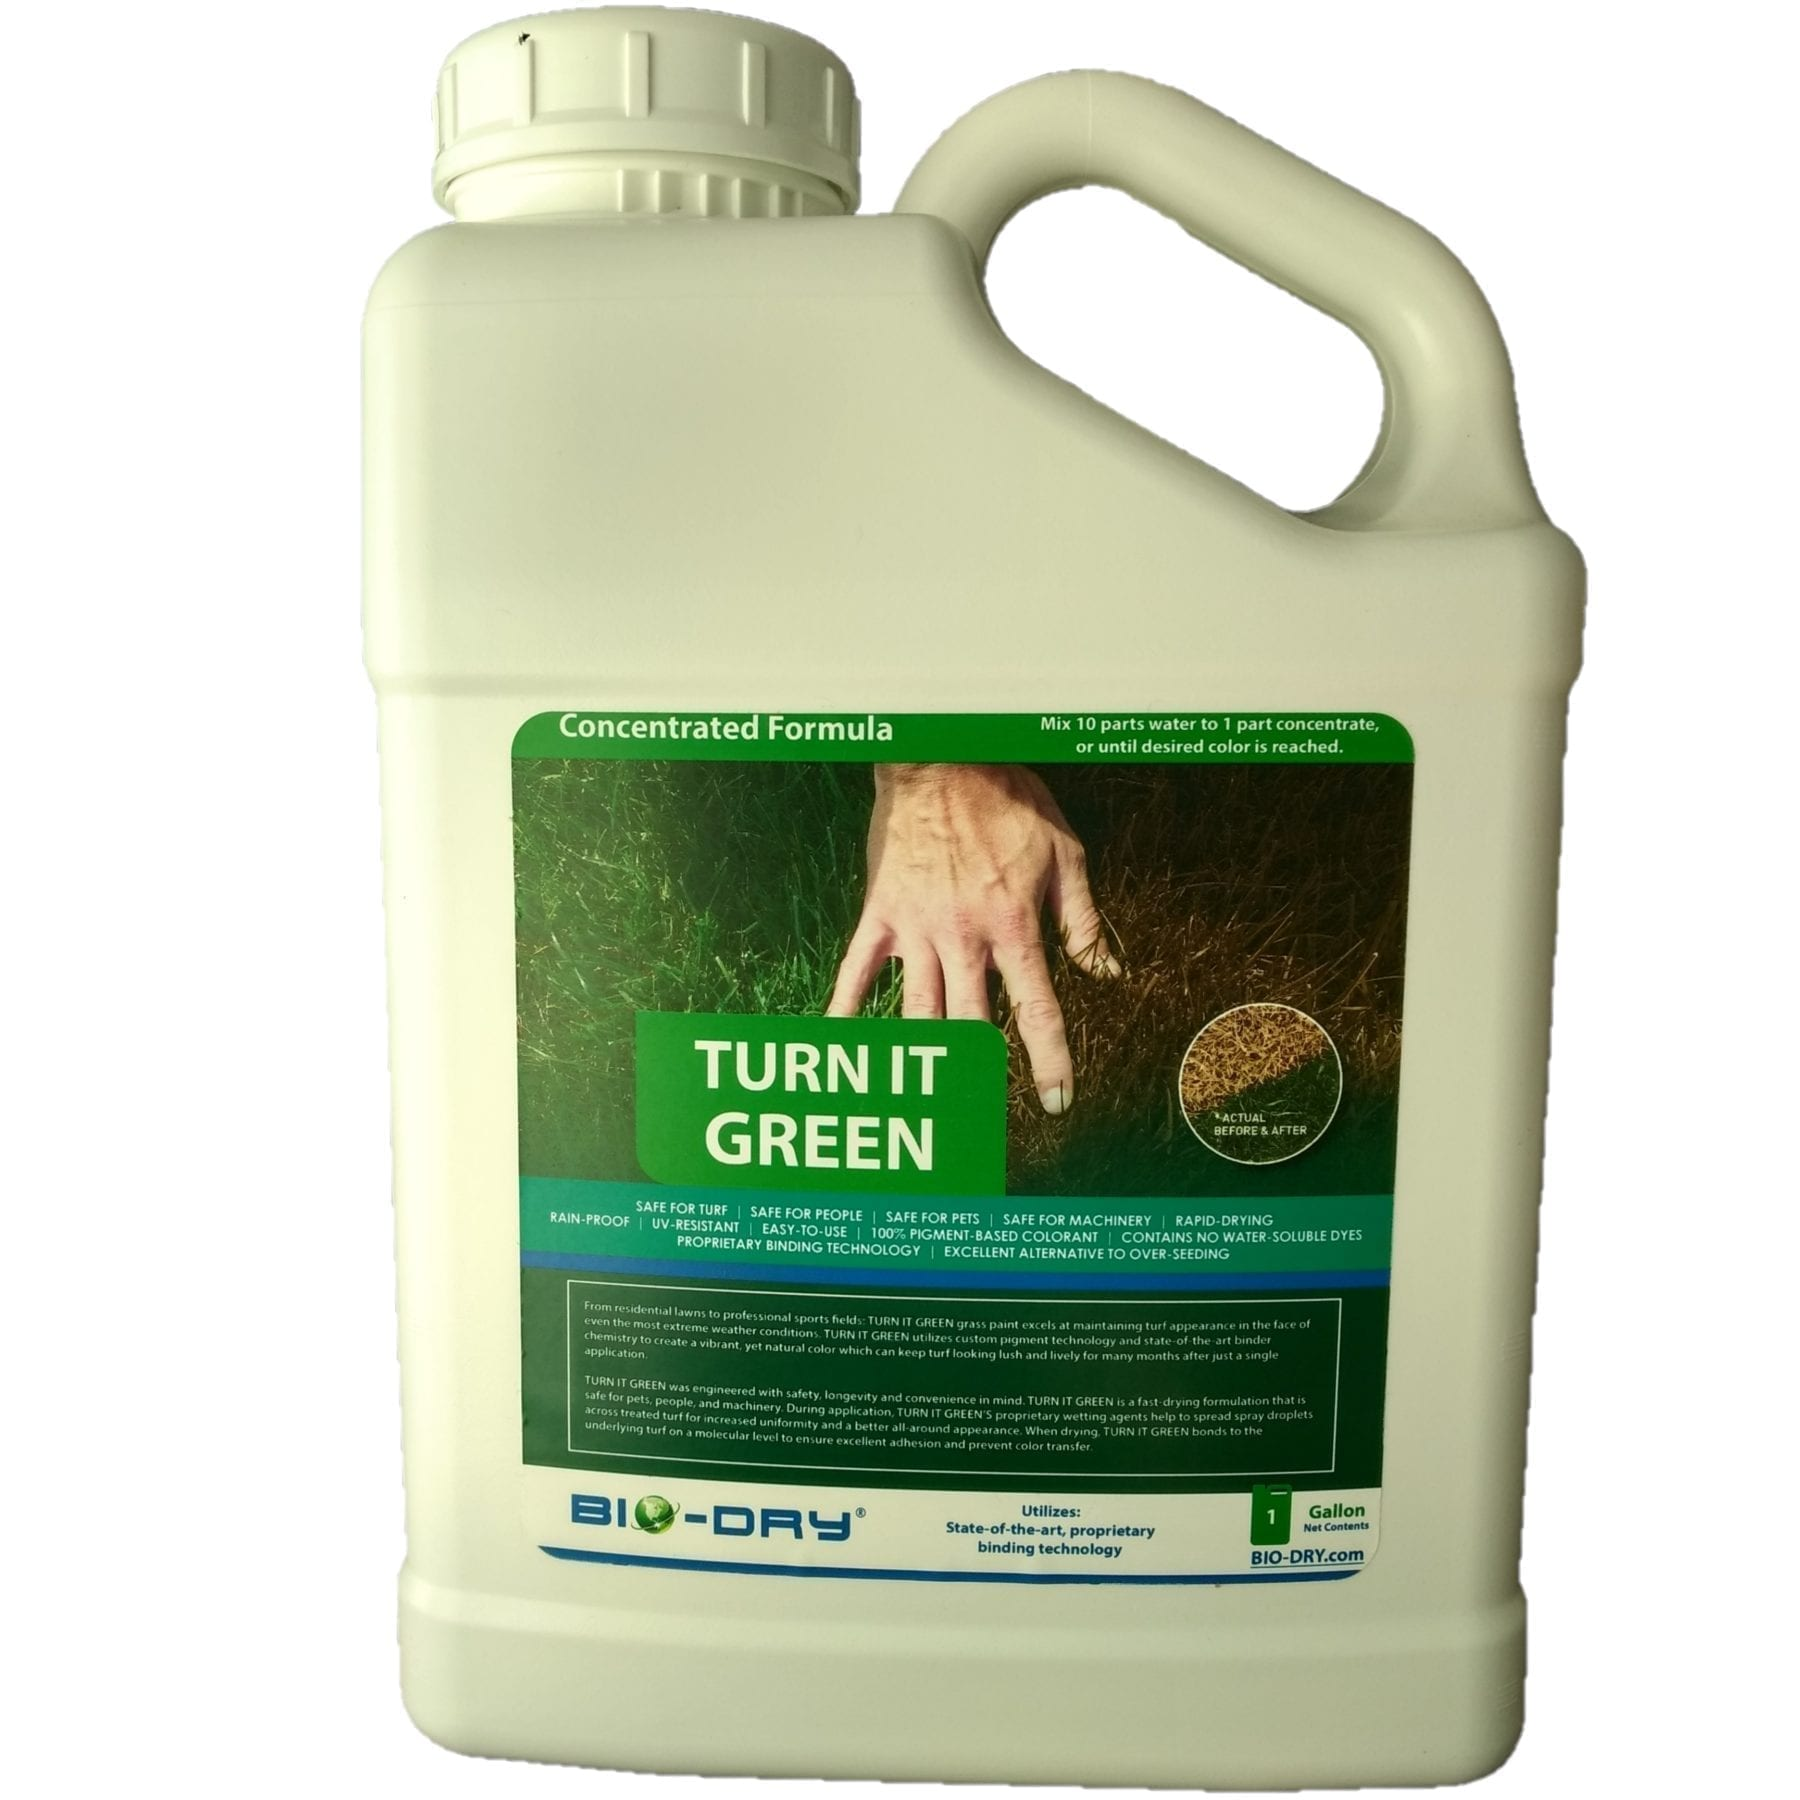 TURN IT GREEN Turf Paint Concentrate 1 Gallon